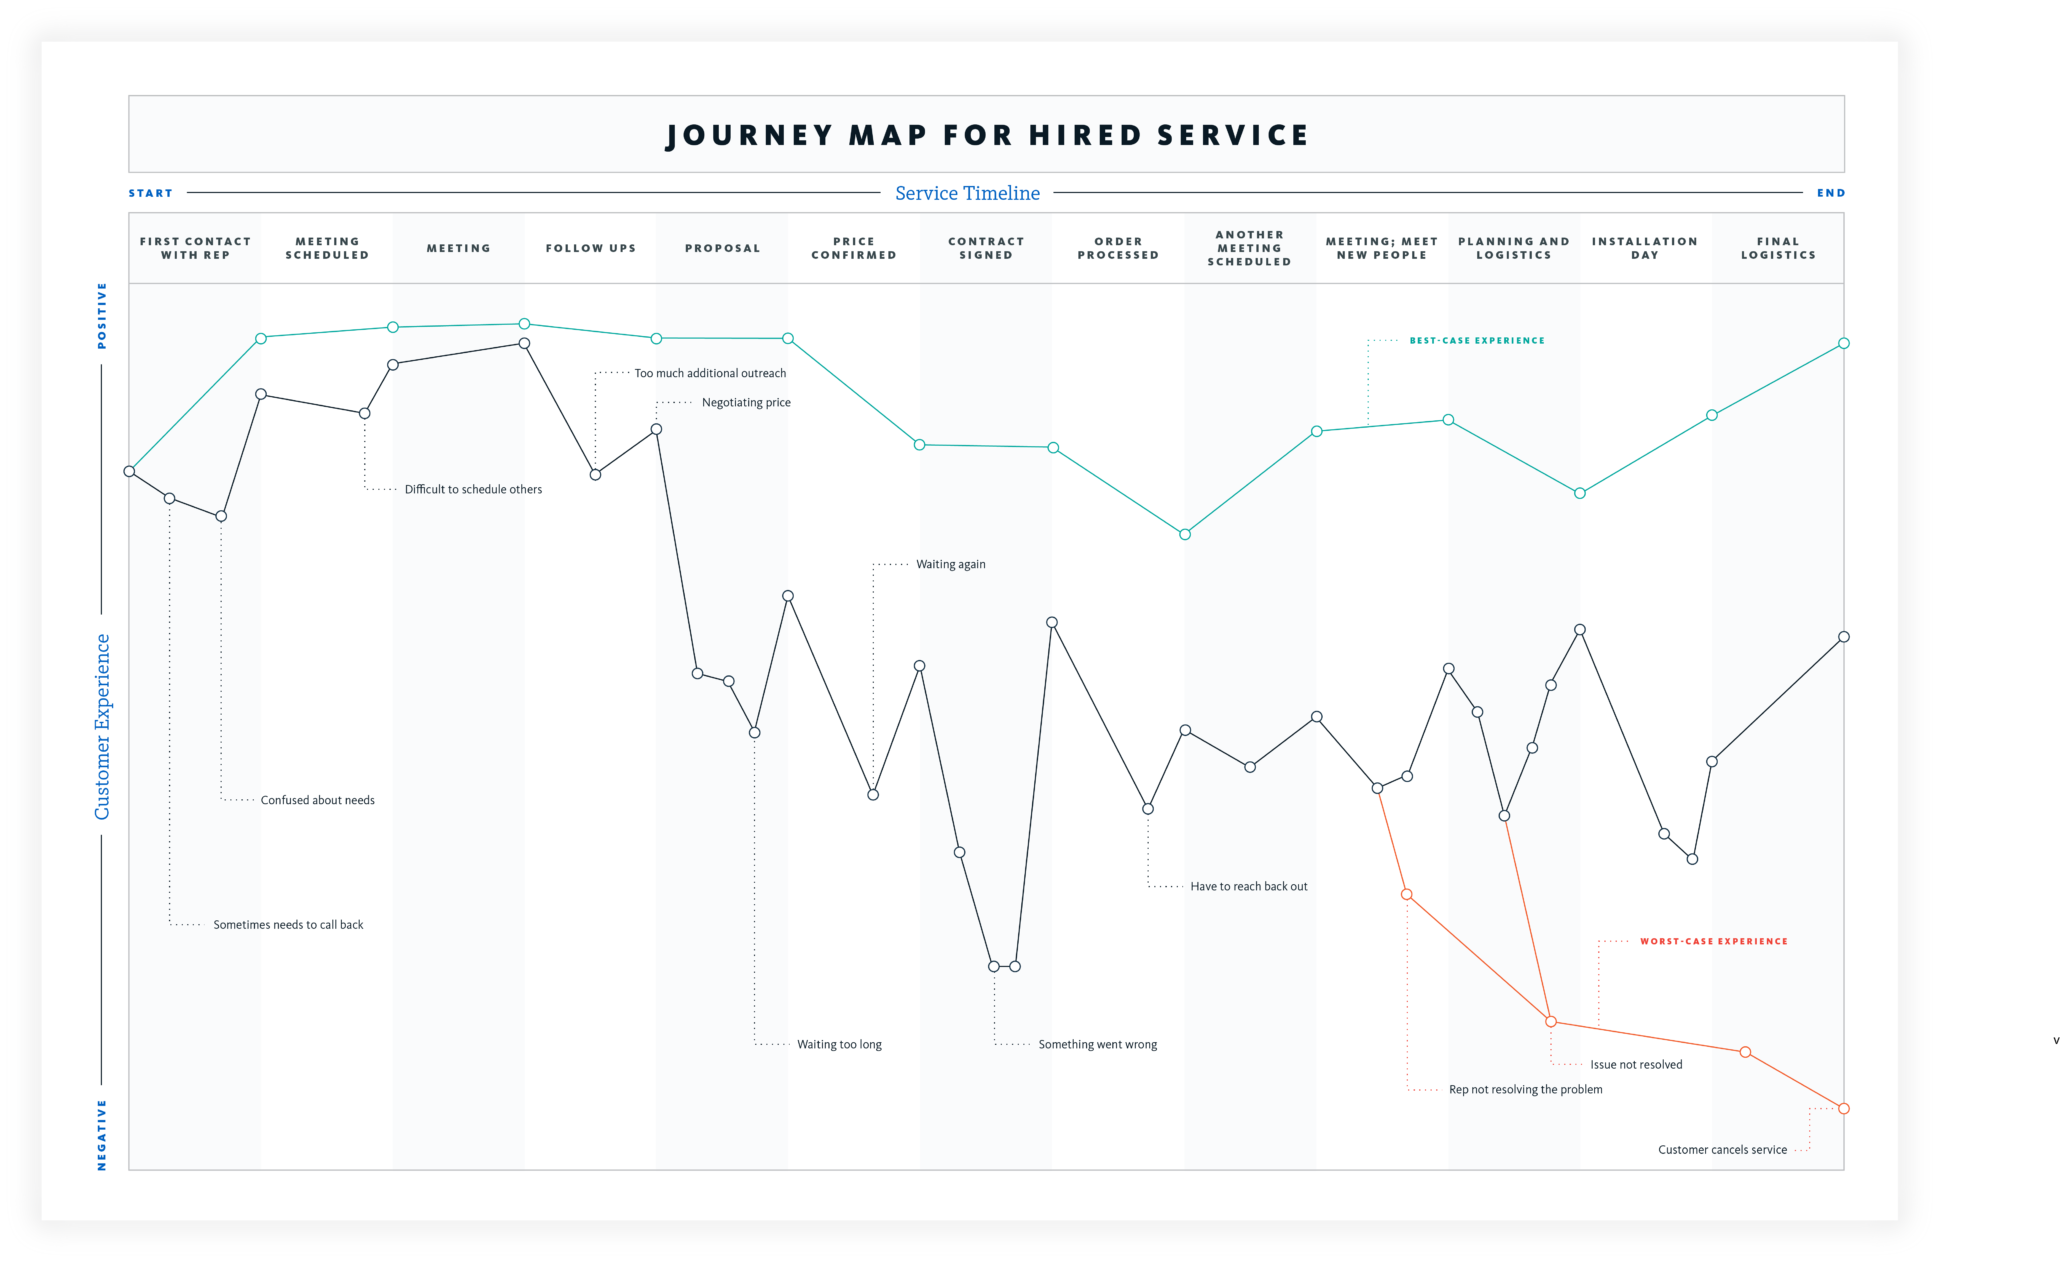 Example journey map for a hired service